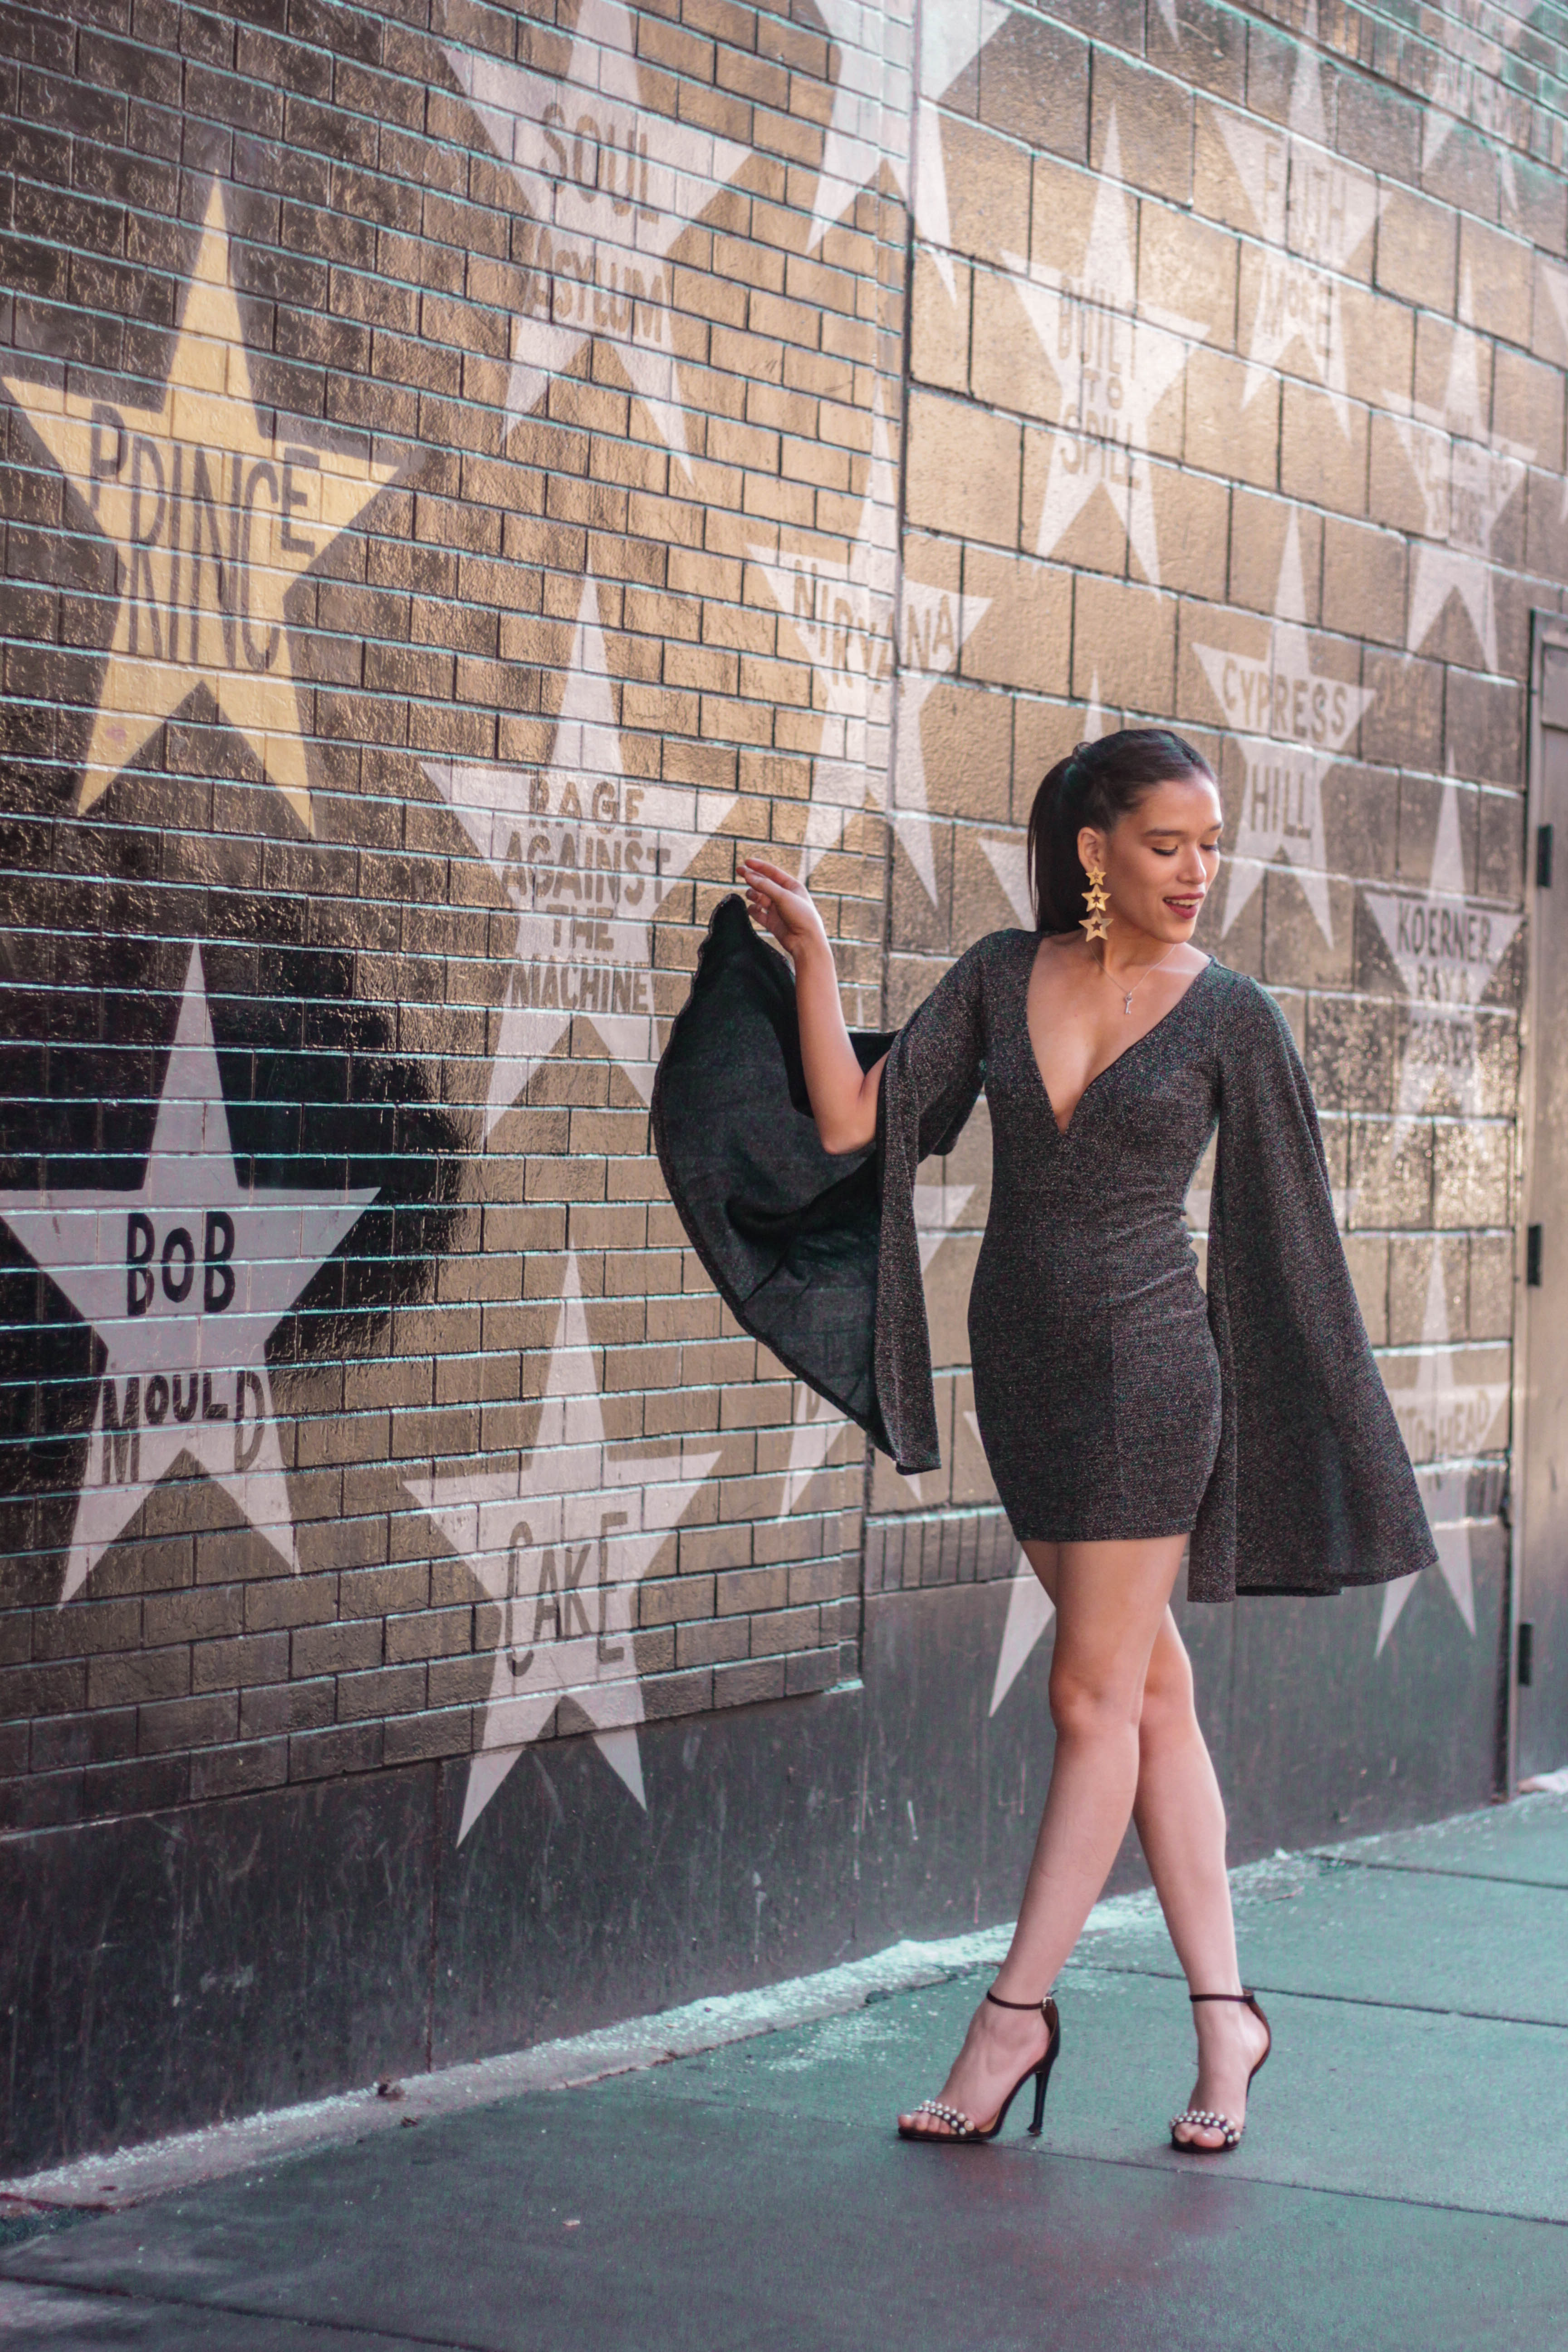 eva phan eva darling first avenue theatre theater minneapolis instagrammable wall minneapolis instagram mural forever 21 inexpensive clothing where to go in minnesota travel blogger